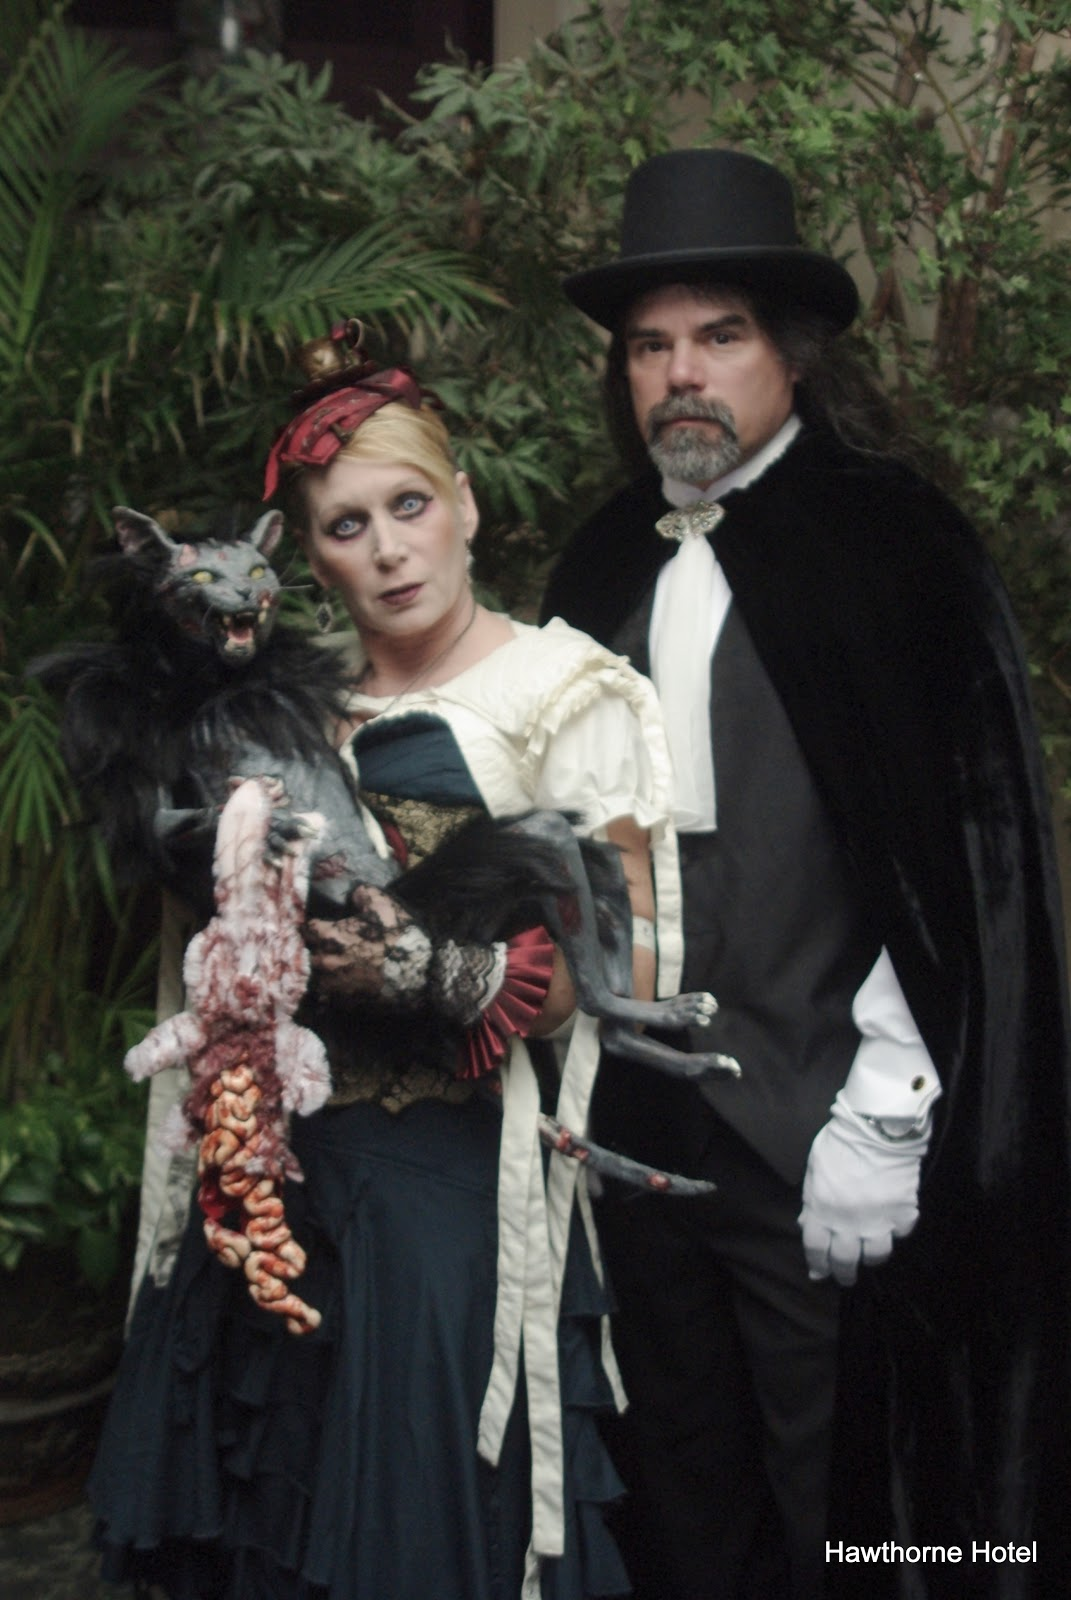 Hawthorne Hotel: Annual Halloween Ball At the Hawthorne Hotel ...